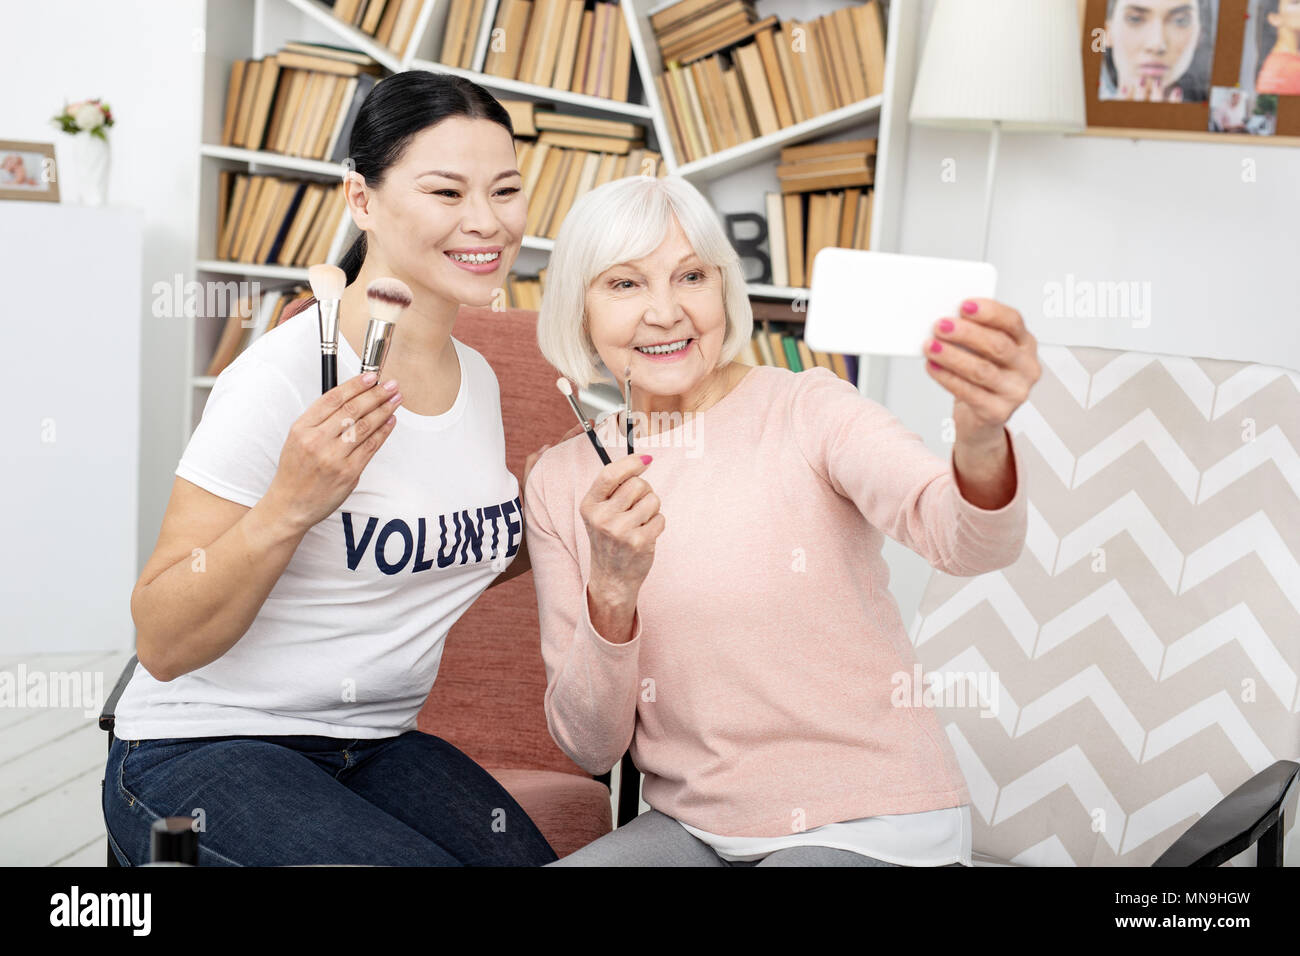 Happy volunteer and senior woman smiling for selfie - Stock Image